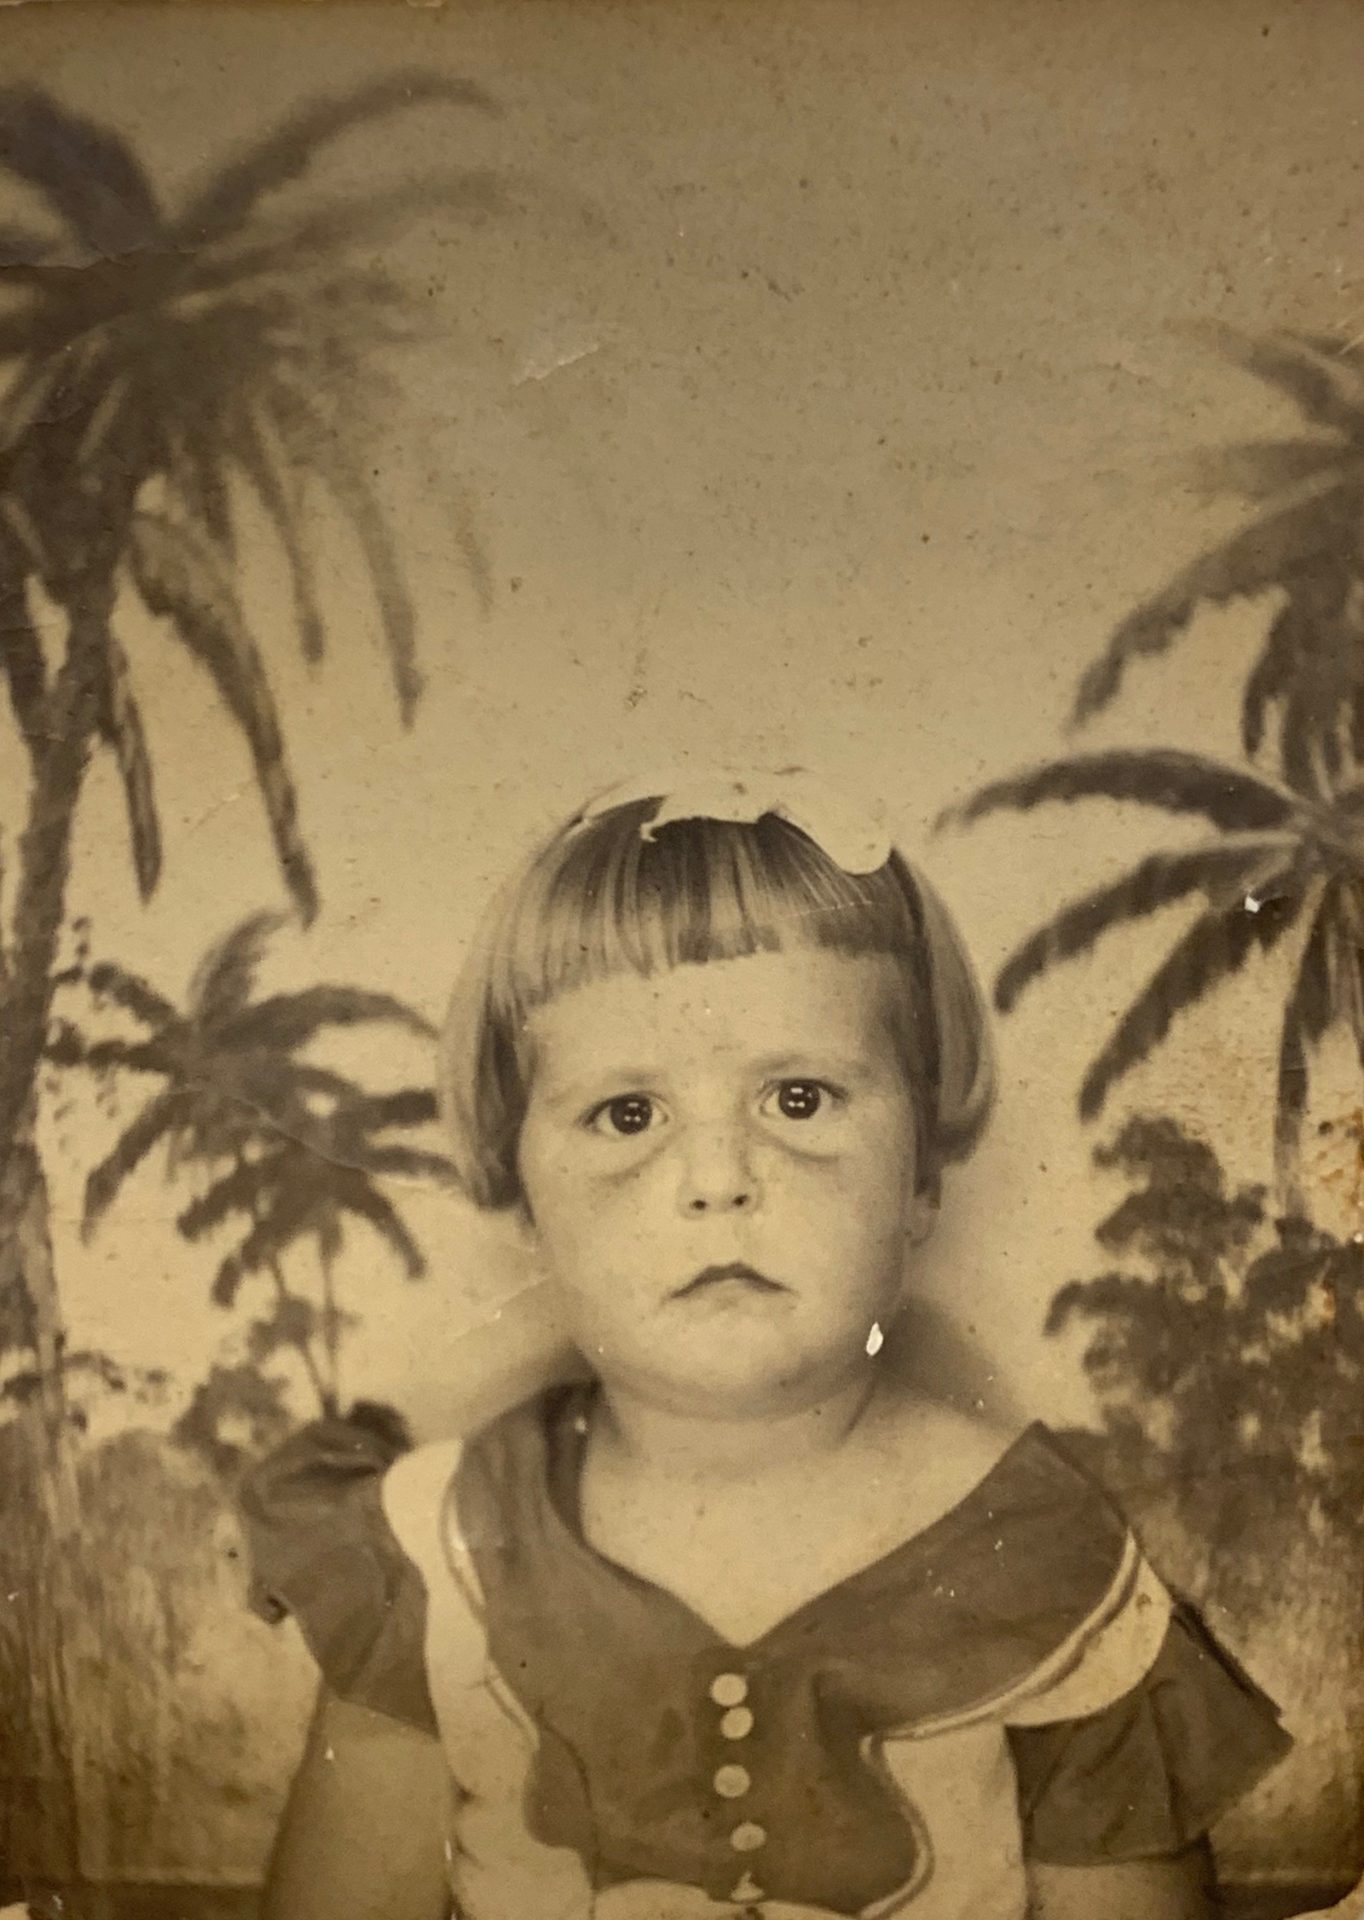 1936 - Look at that sweet face!